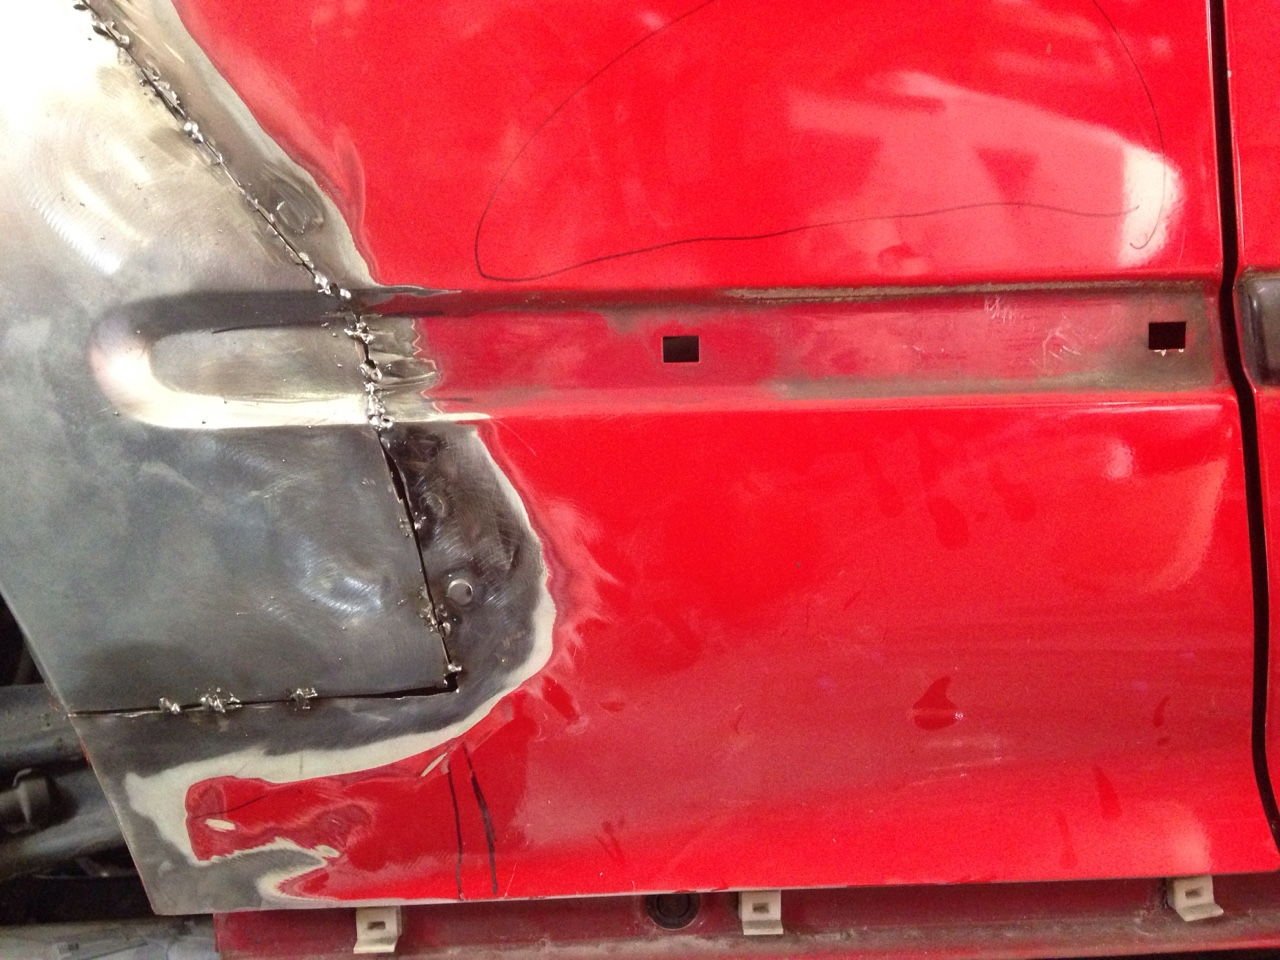 Quarter Panel Rust Repair EH2 Issues - Honda-Tech - Honda Forum Discussion